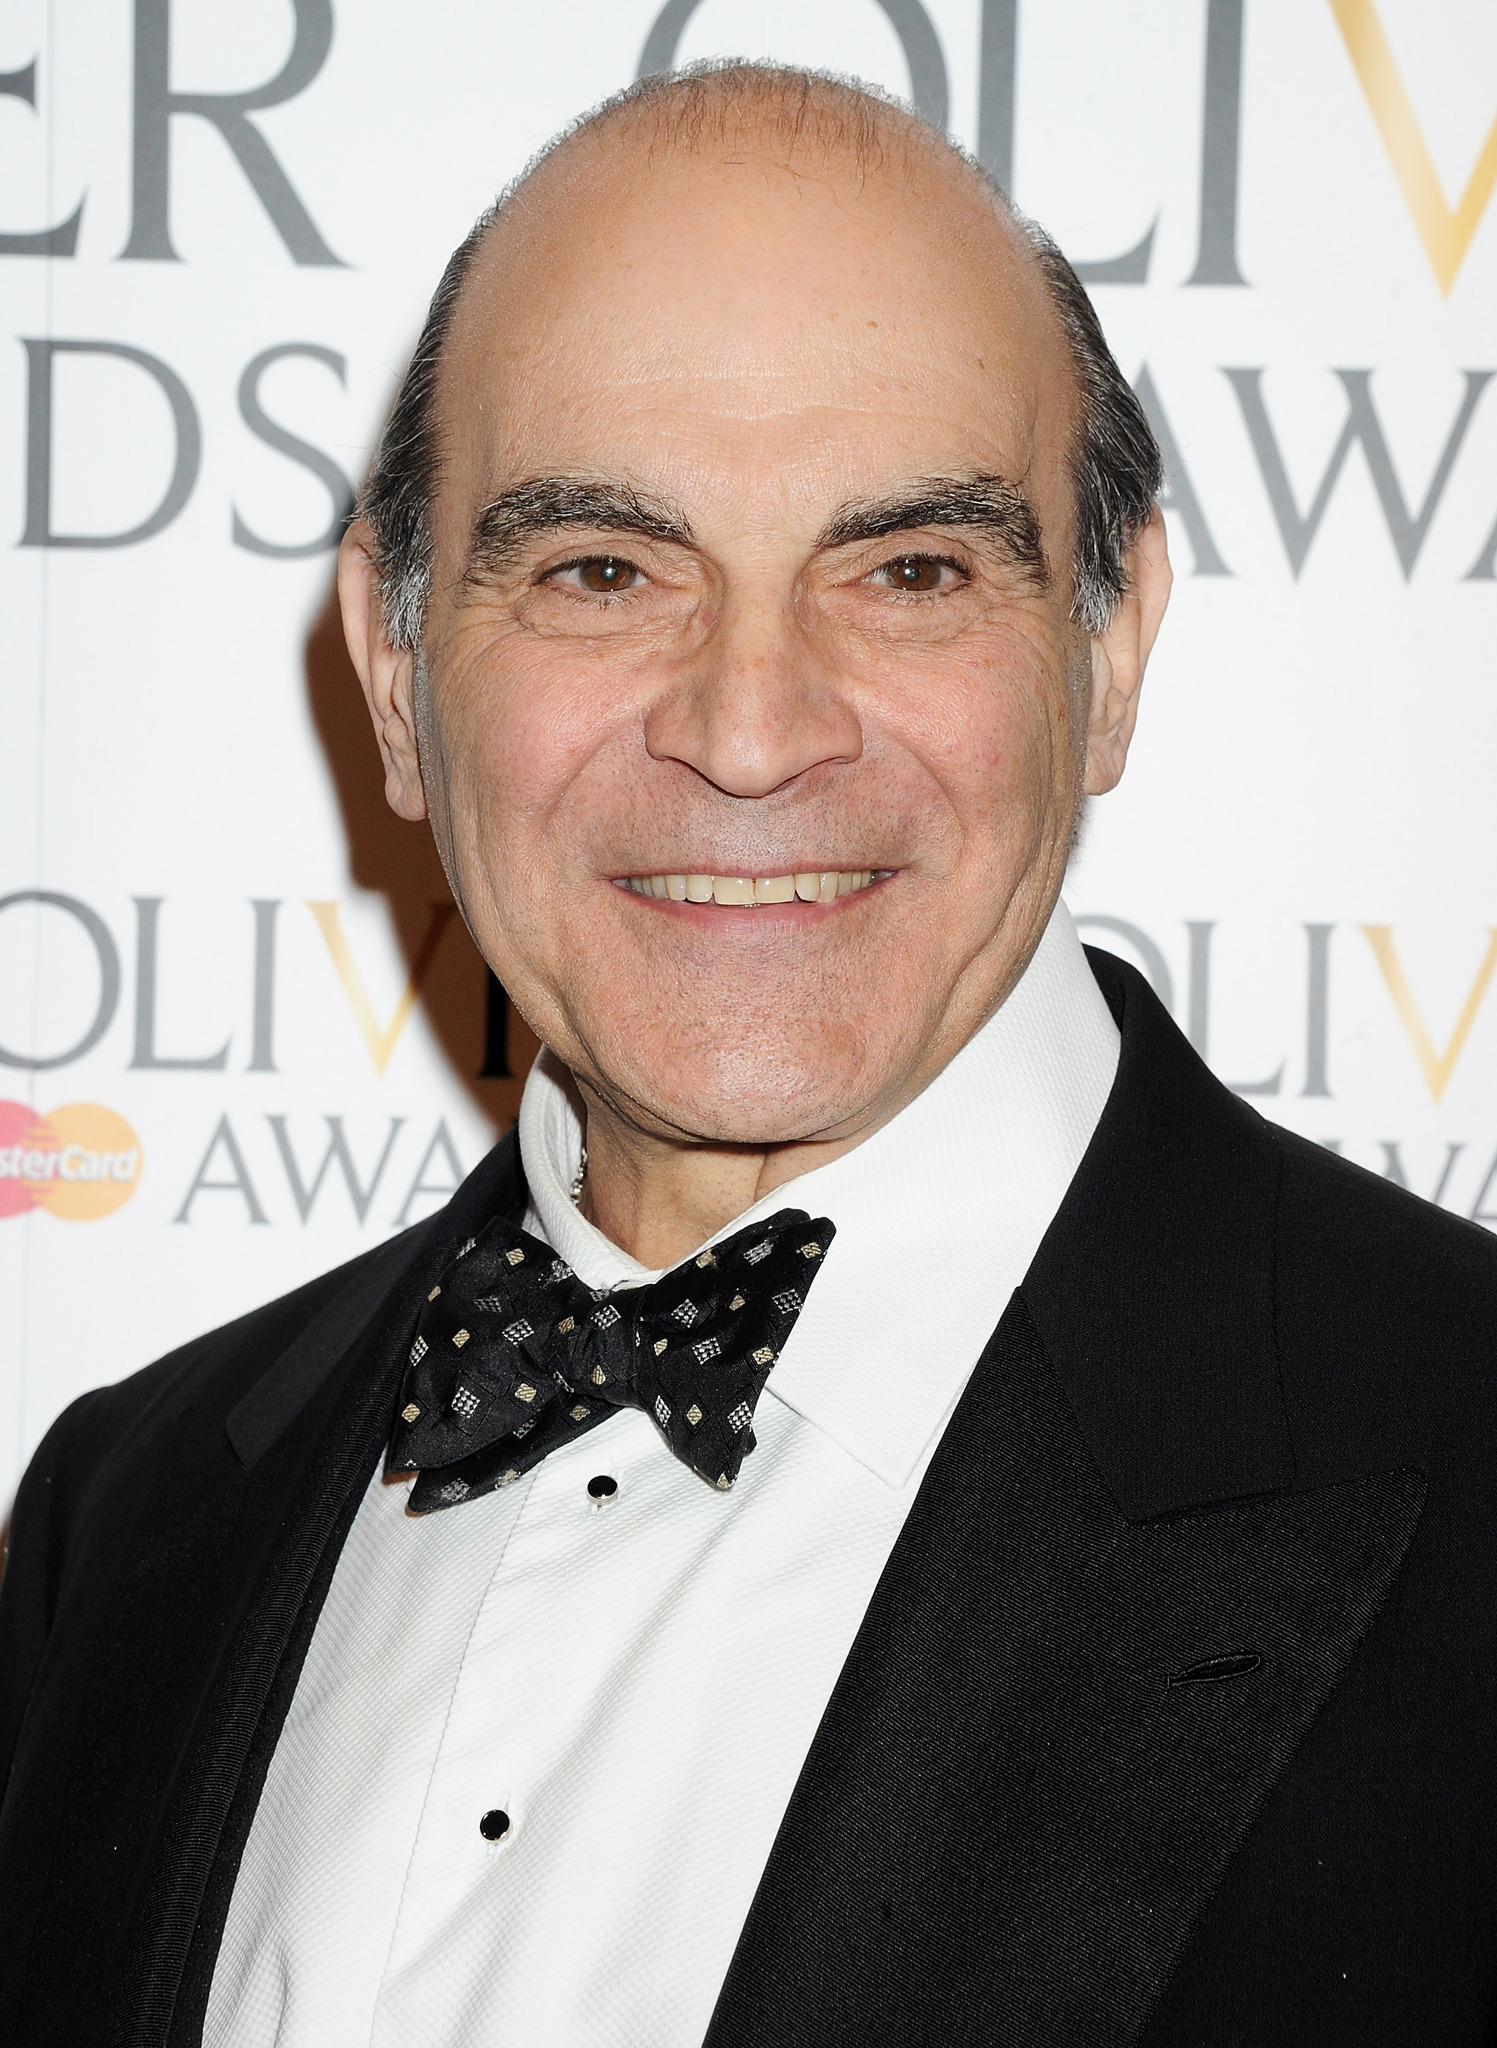 Communication on this topic: KaDee Strickland, david-suchet-born-1946/